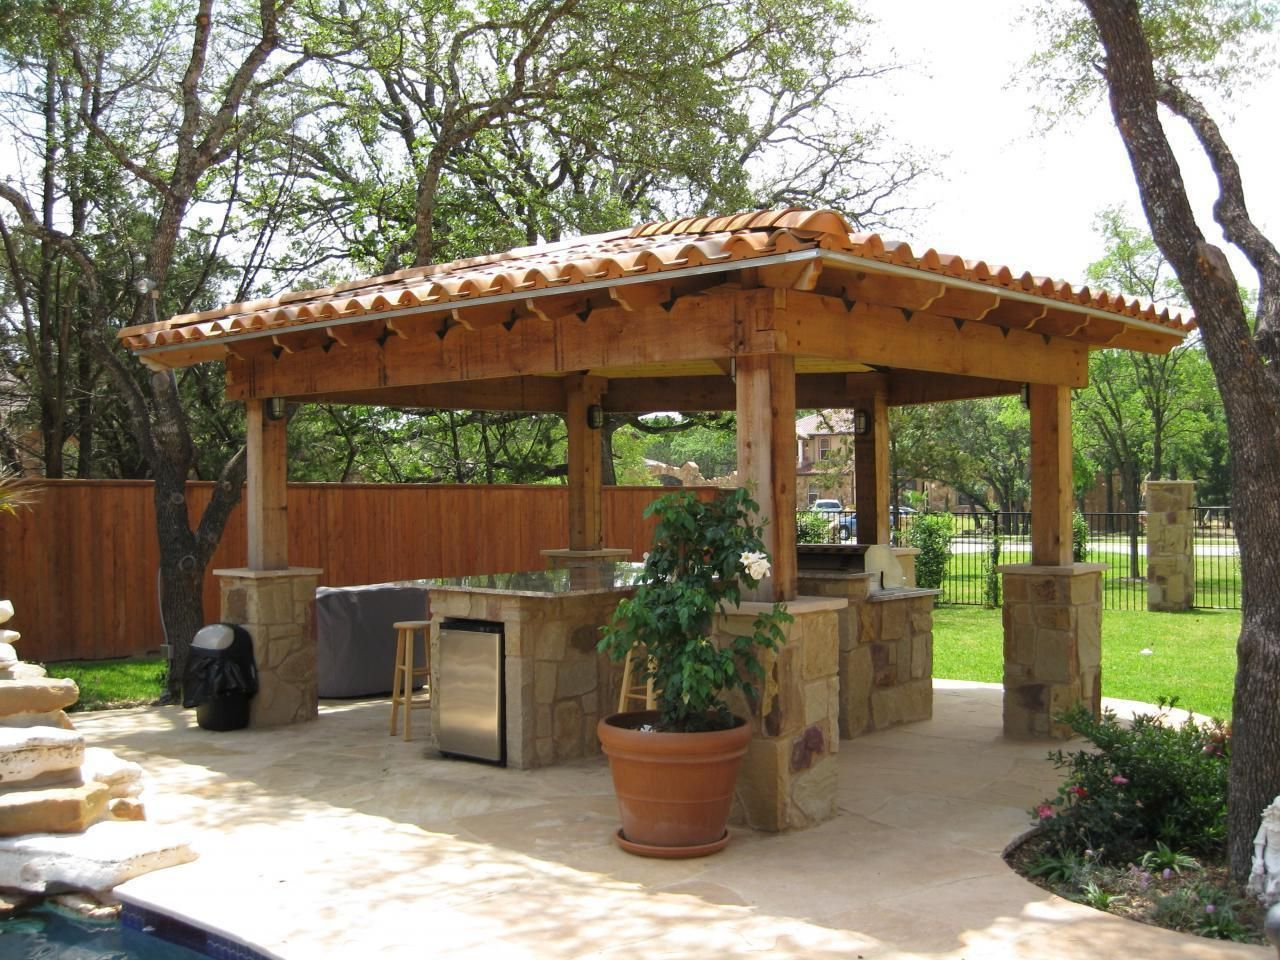 Adorable outdoor kitchen design under elegant gazebo for Outdoor kitchen pavilion designs